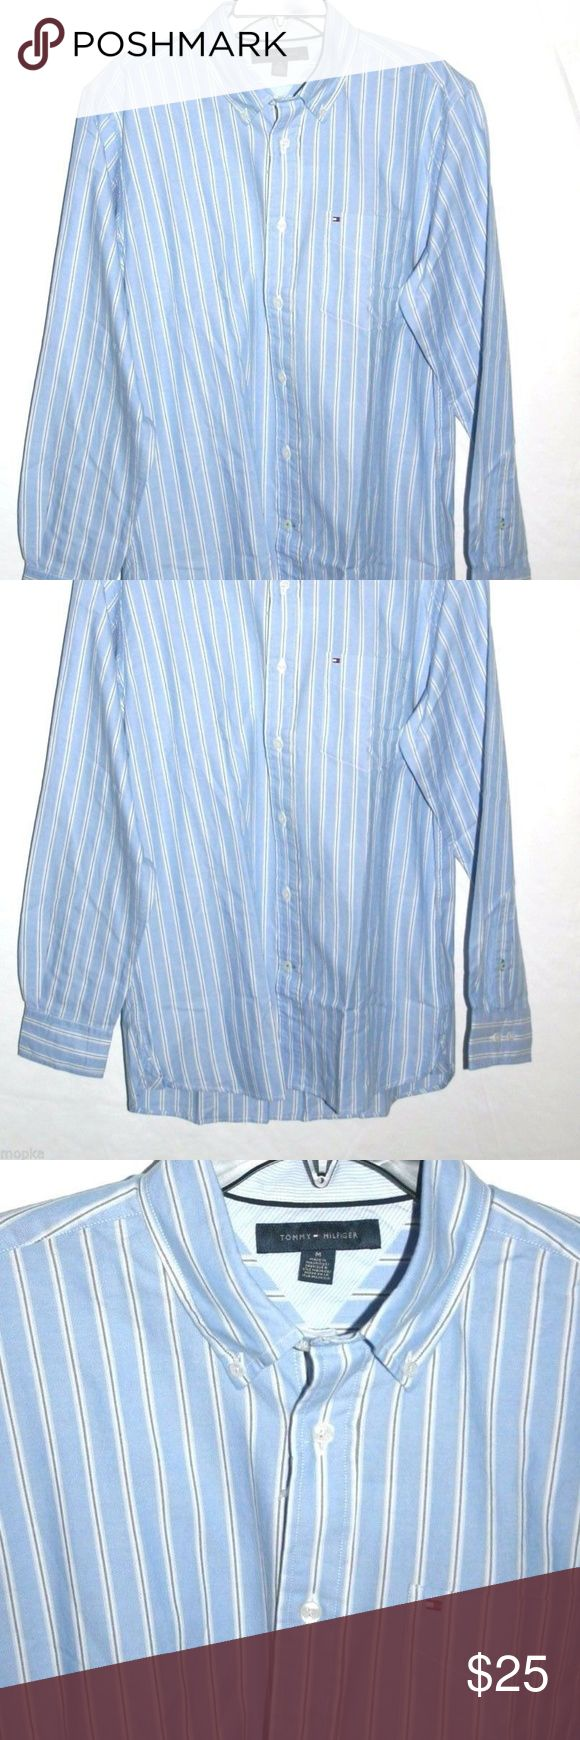 """Tommy Hilfiger Oxford Shirt Sz. M Blue Stripe new Sz. medium  NWT  Blue, navy and white stripe Oxford shirt, Tommy flag on embroidered on the chest pocket.  Outlet price $49.99 (tag attached)  Pit-to-pit 23"""" blue/white color Oxford material 100% cotton. Machine washable. Tommy Hilfiger Shirts Casual Button Down Shirts"""